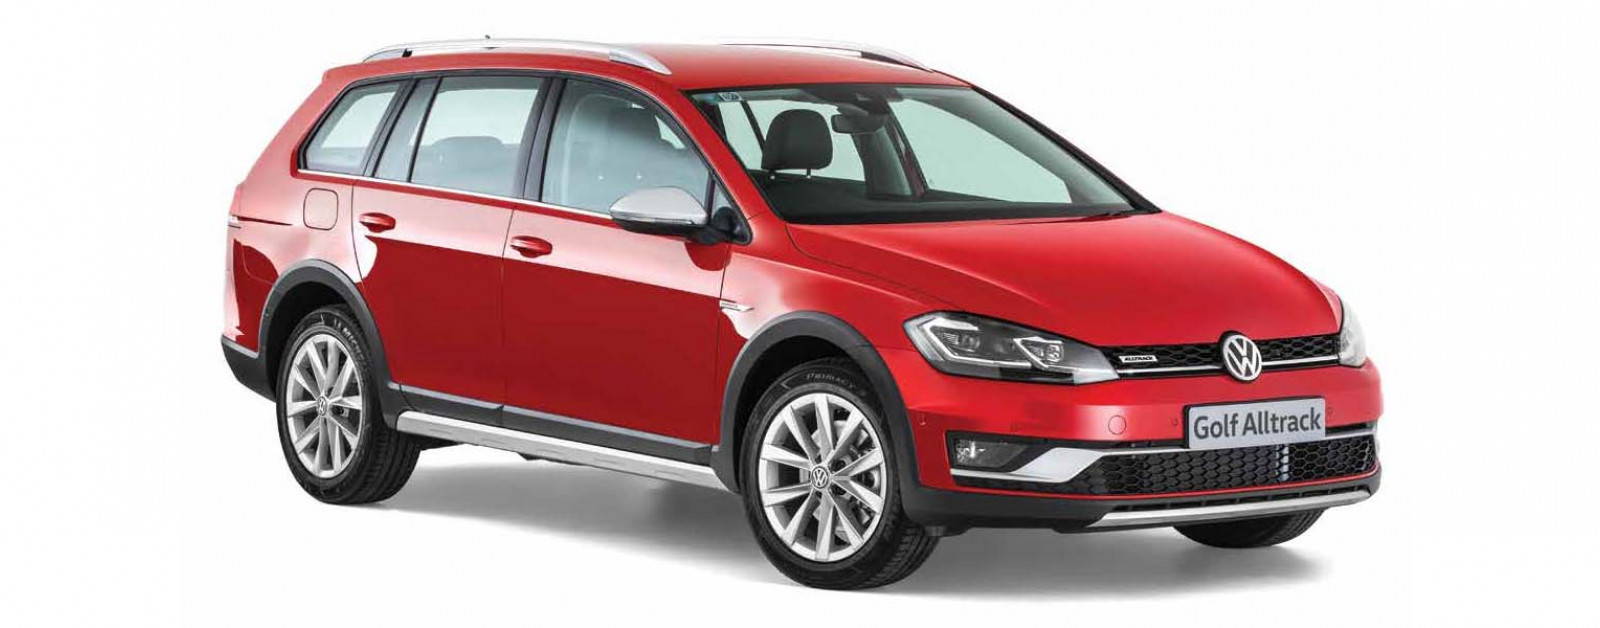 New Golf Alltrack